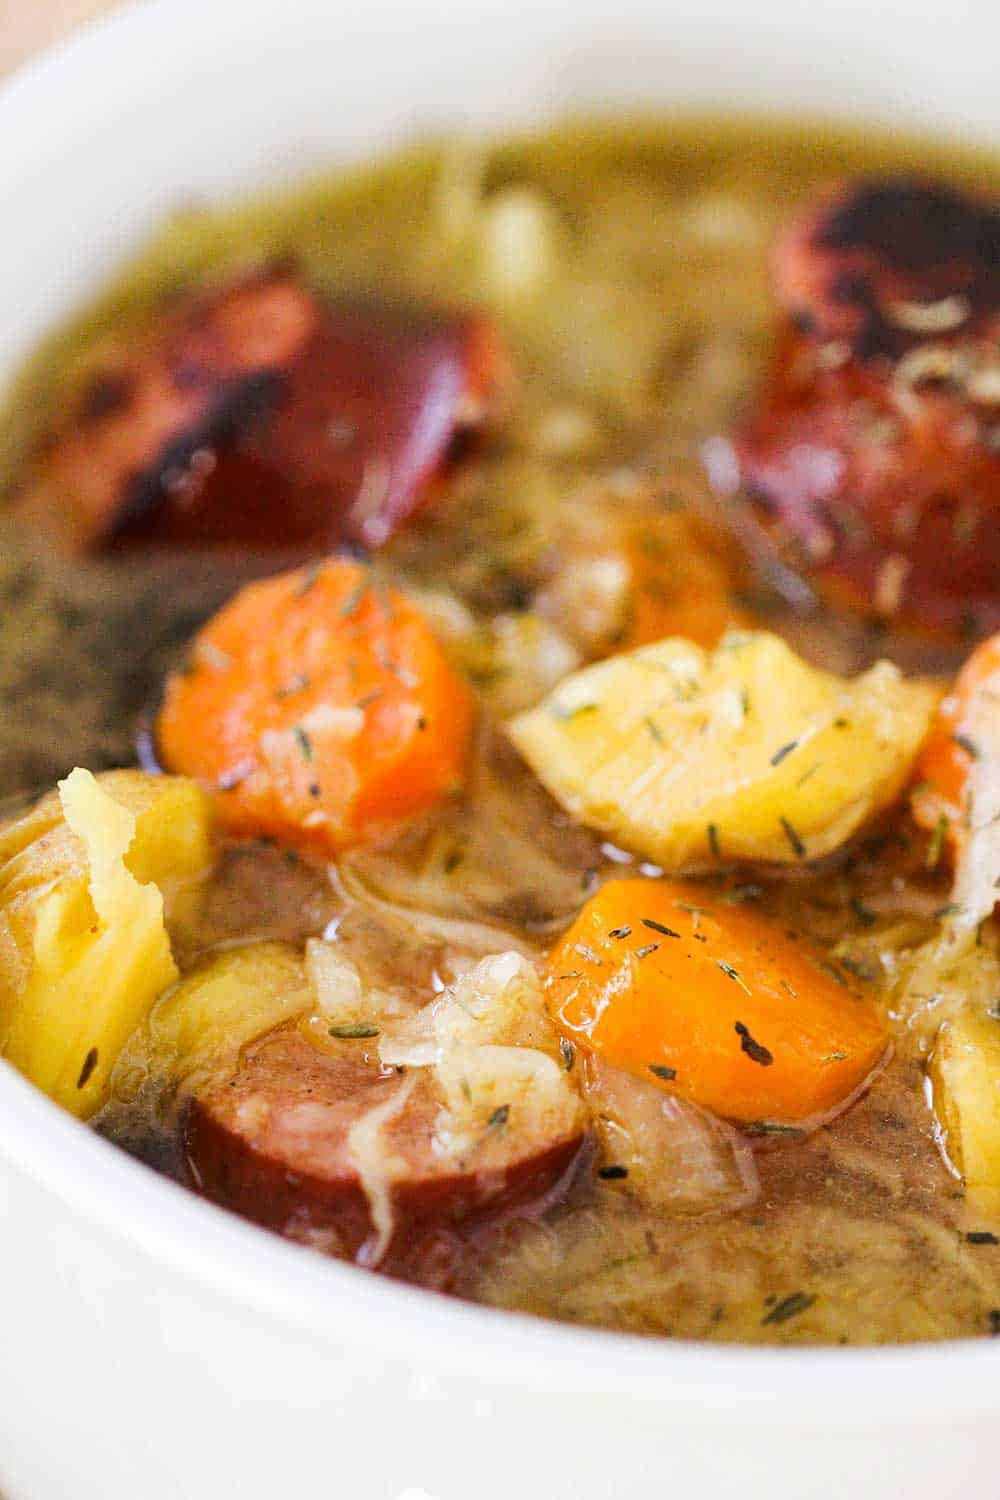 A close up view of a bowl full of stew with sausage, potatoes and carrots.